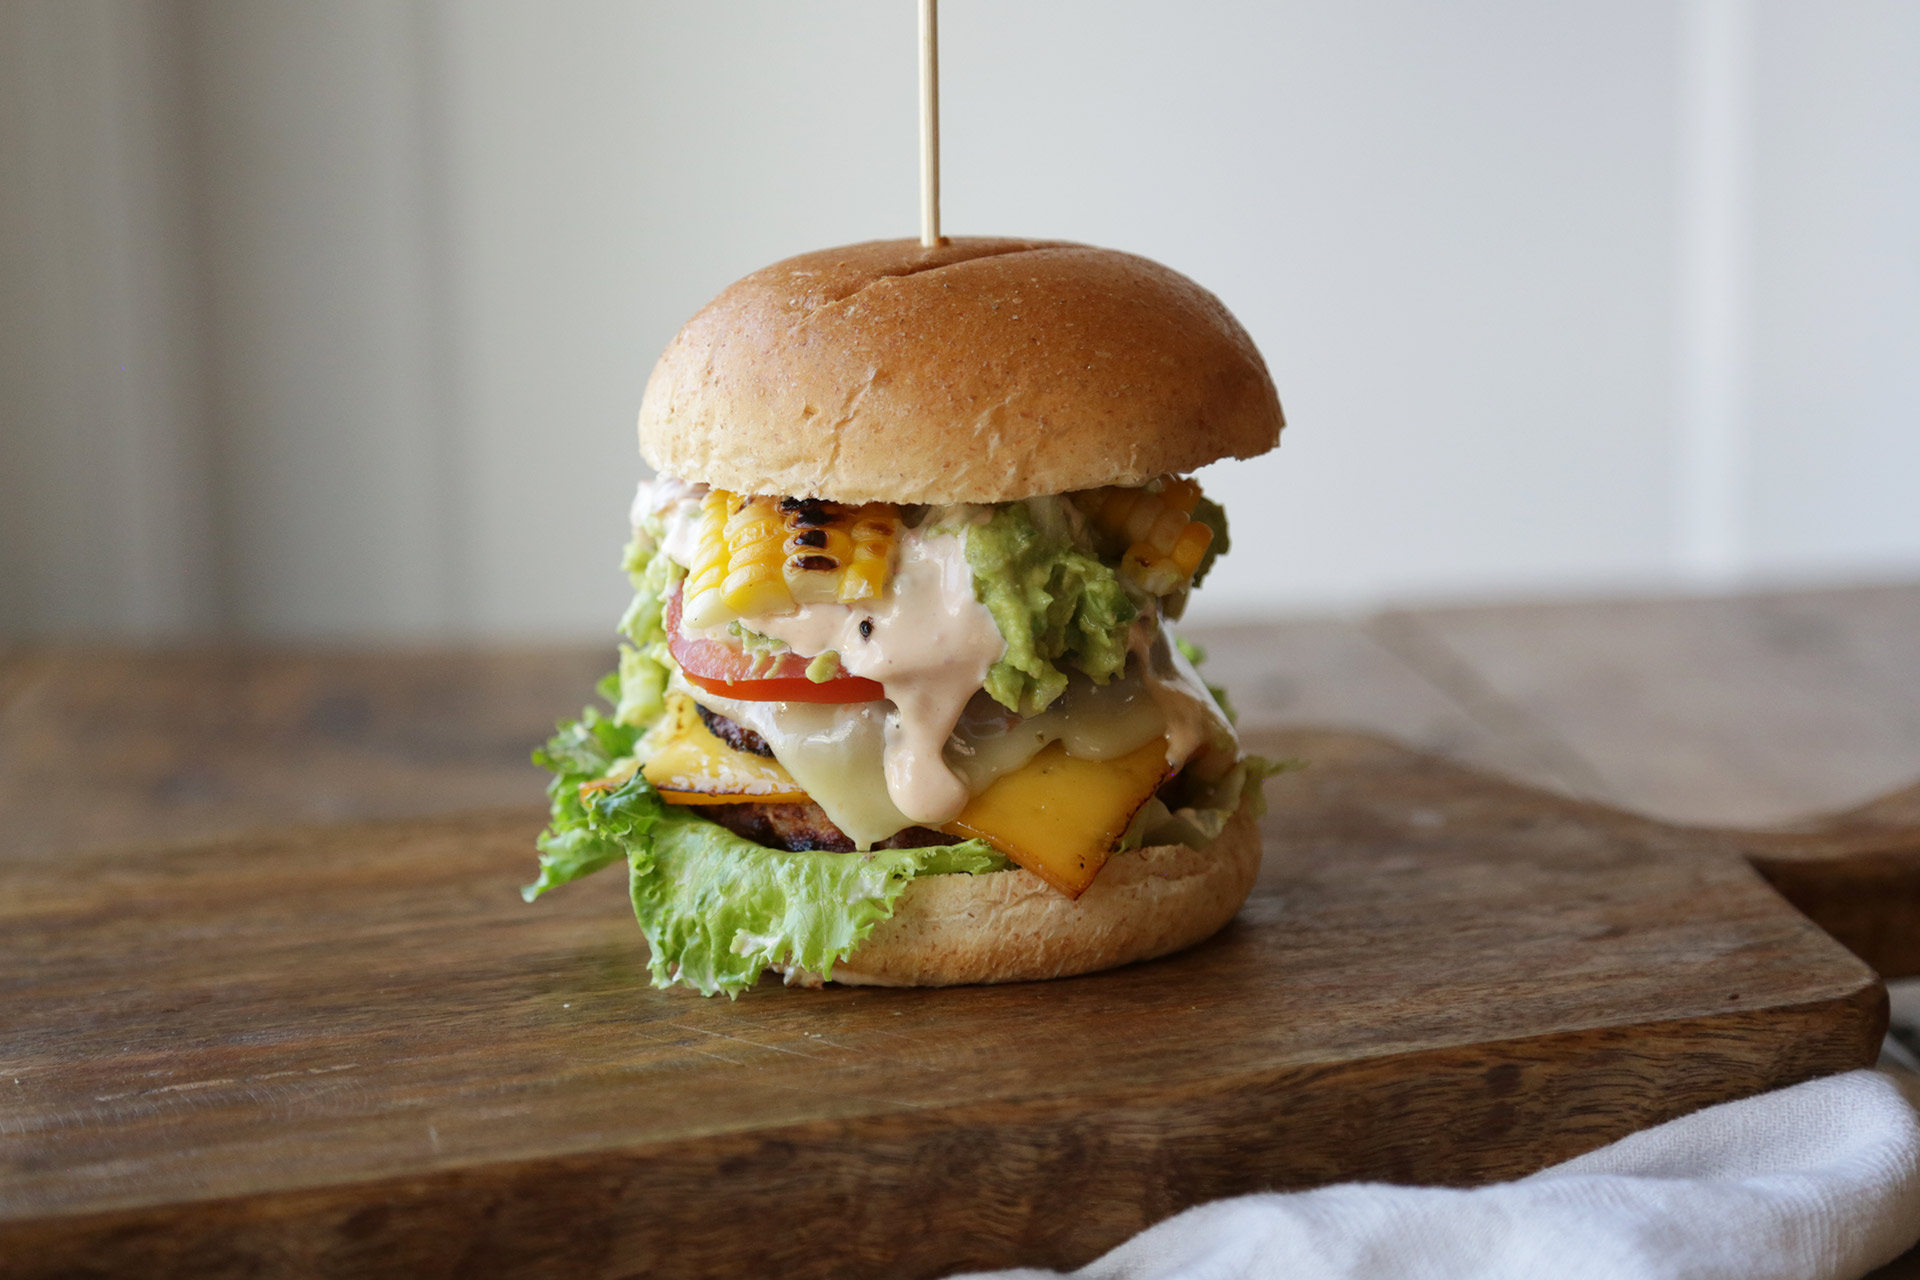 Southwest Turkey Burger Recipe With Guacamole and Chipotle Mayo